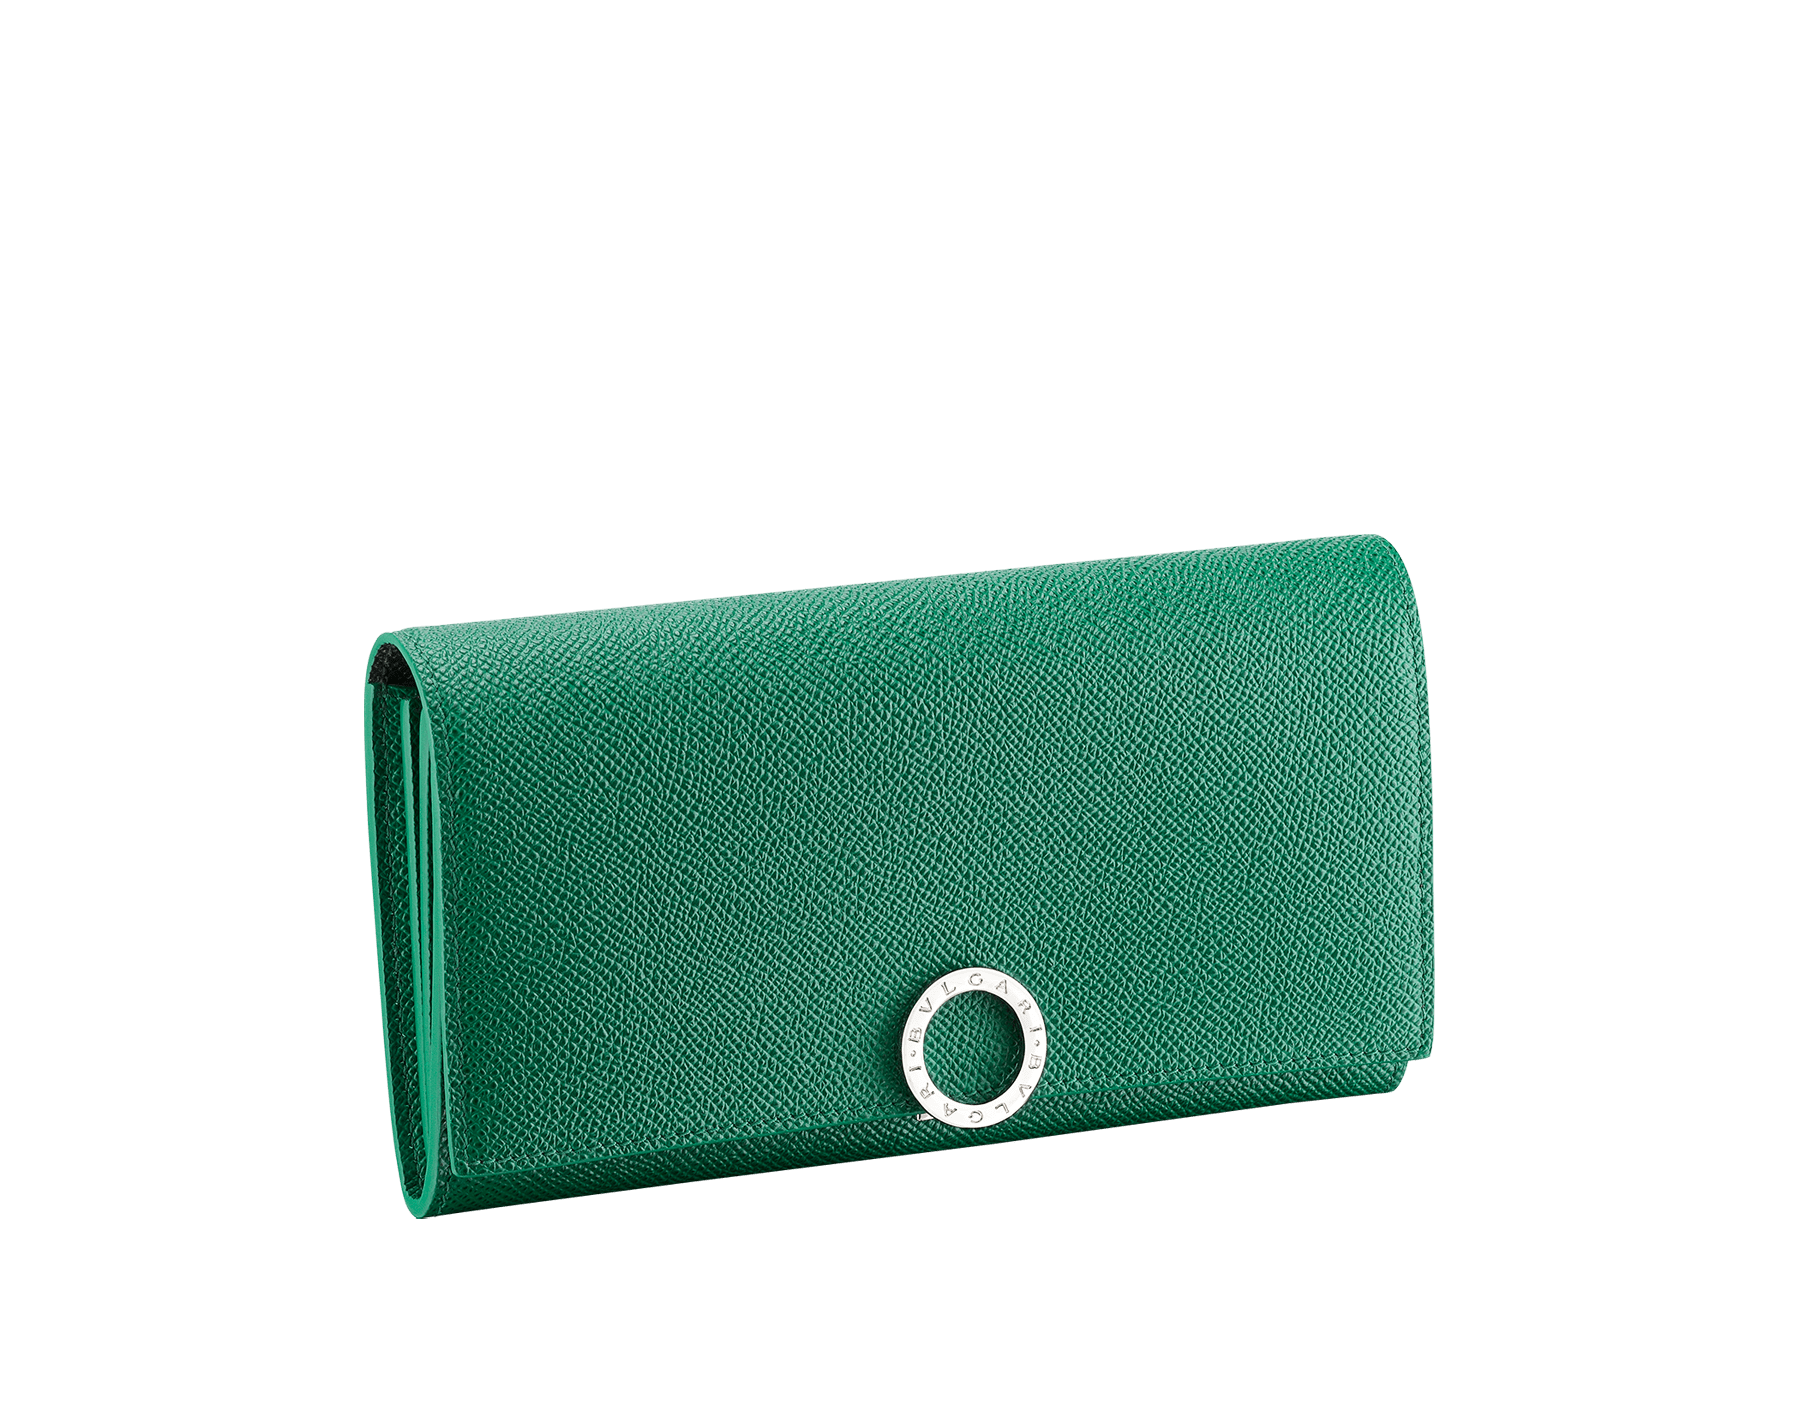 BVLGARI BVLGARI wallet pochette in emerald green and black grain calf leather. Iconic logo clip closure in palladium plated brass. 289379 image 1